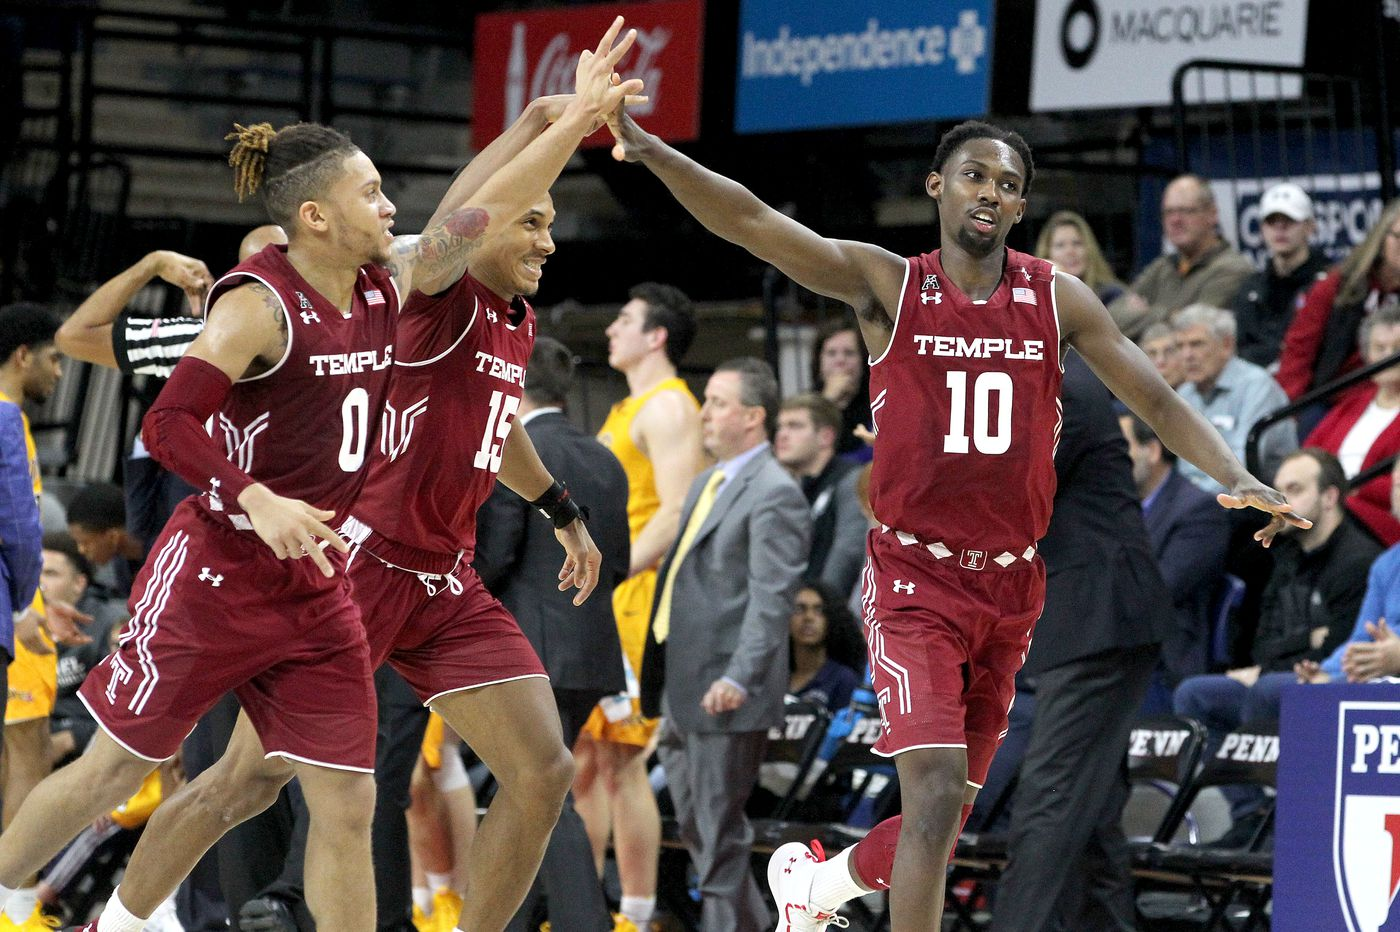 Temple opens AAC schedule against preseason favorite Central Florida